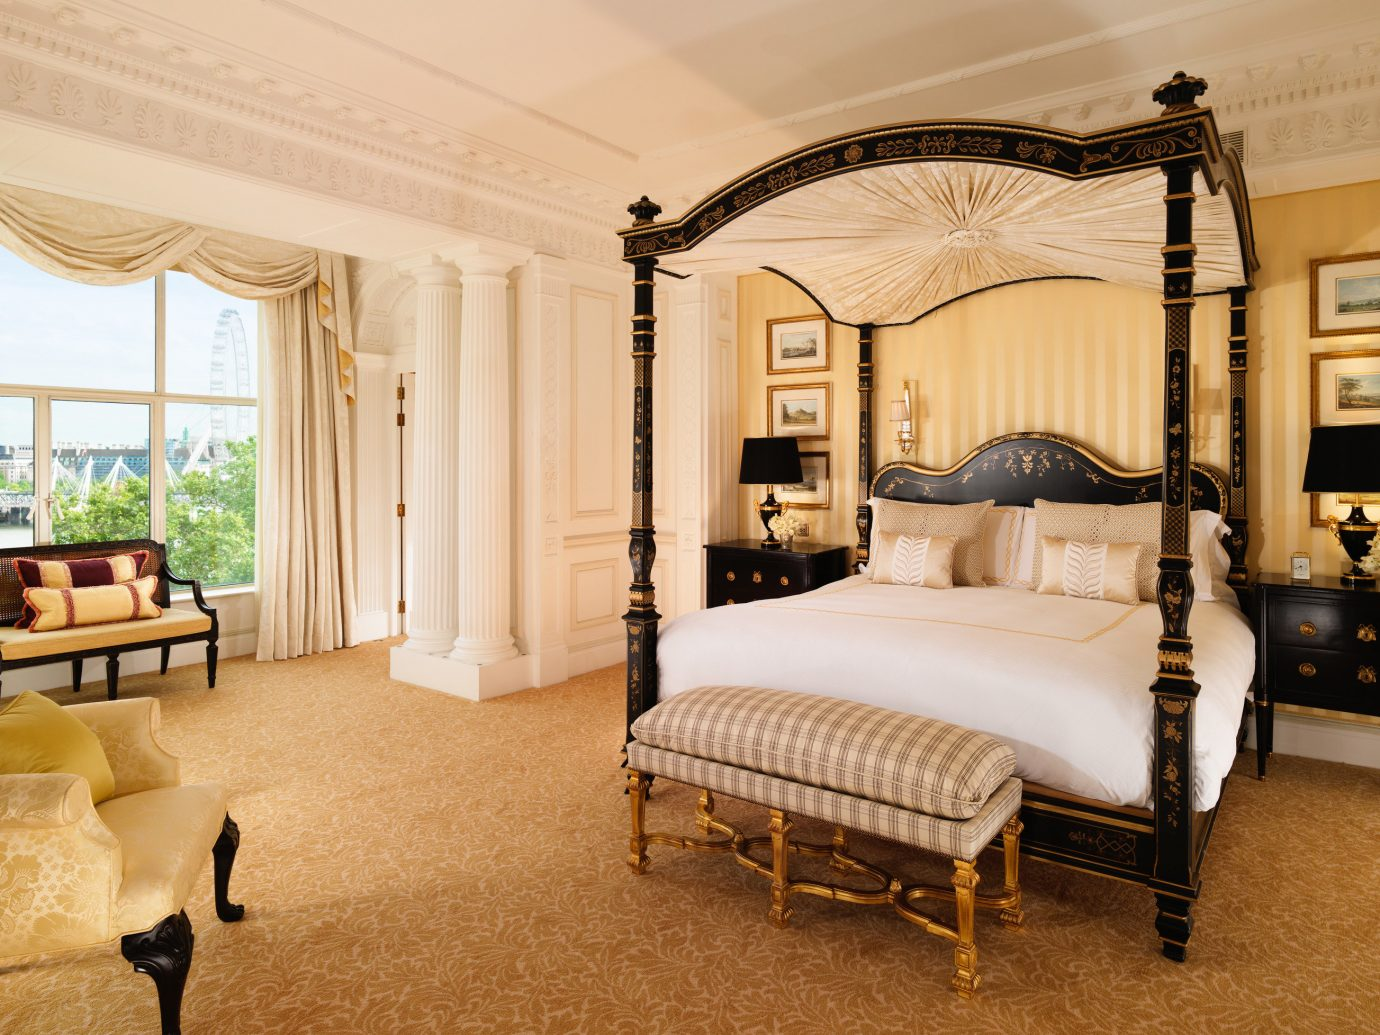 Hotels London Luxury Travel indoor floor room wall bed property ceiling Bedroom interior design Suite estate home bed frame furniture real estate window flooring window treatment four poster